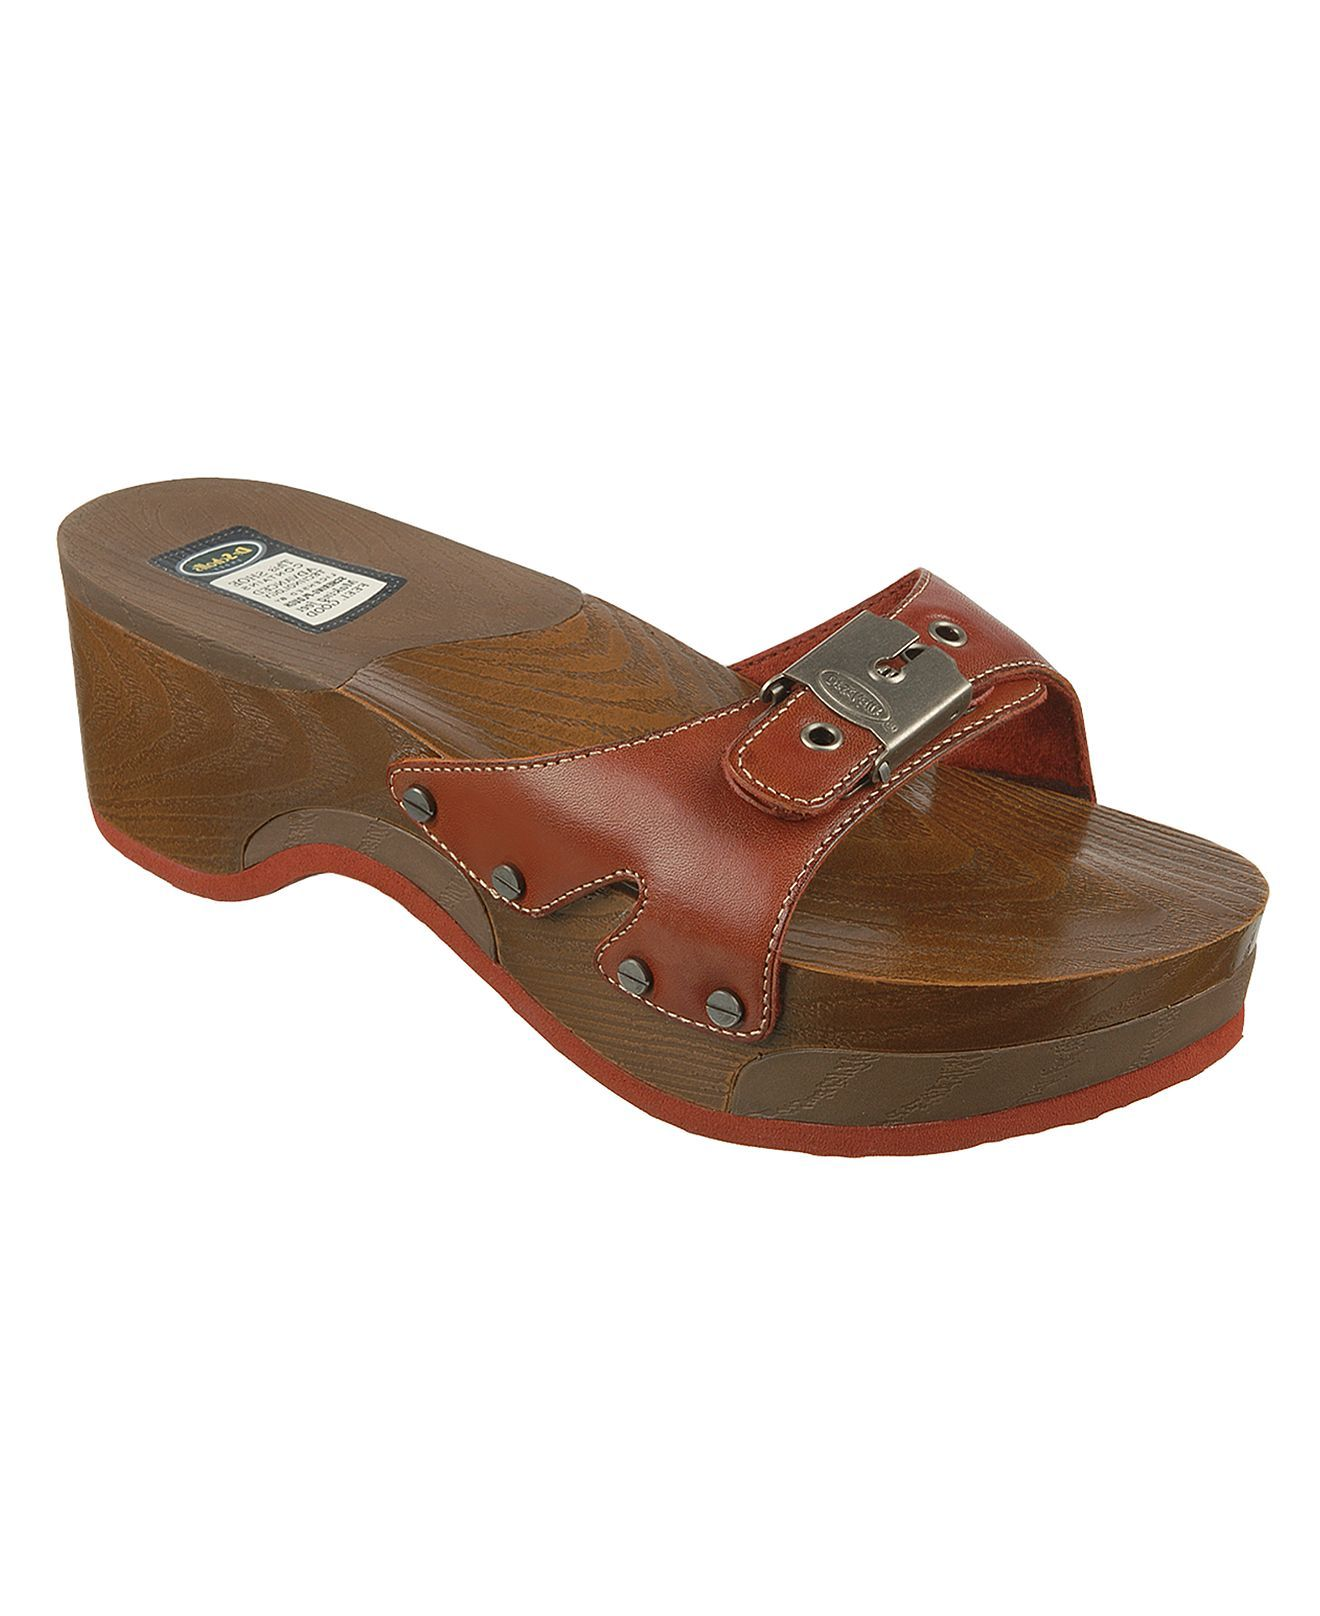 fadfb633a27f Dr. Scholl s Shoes